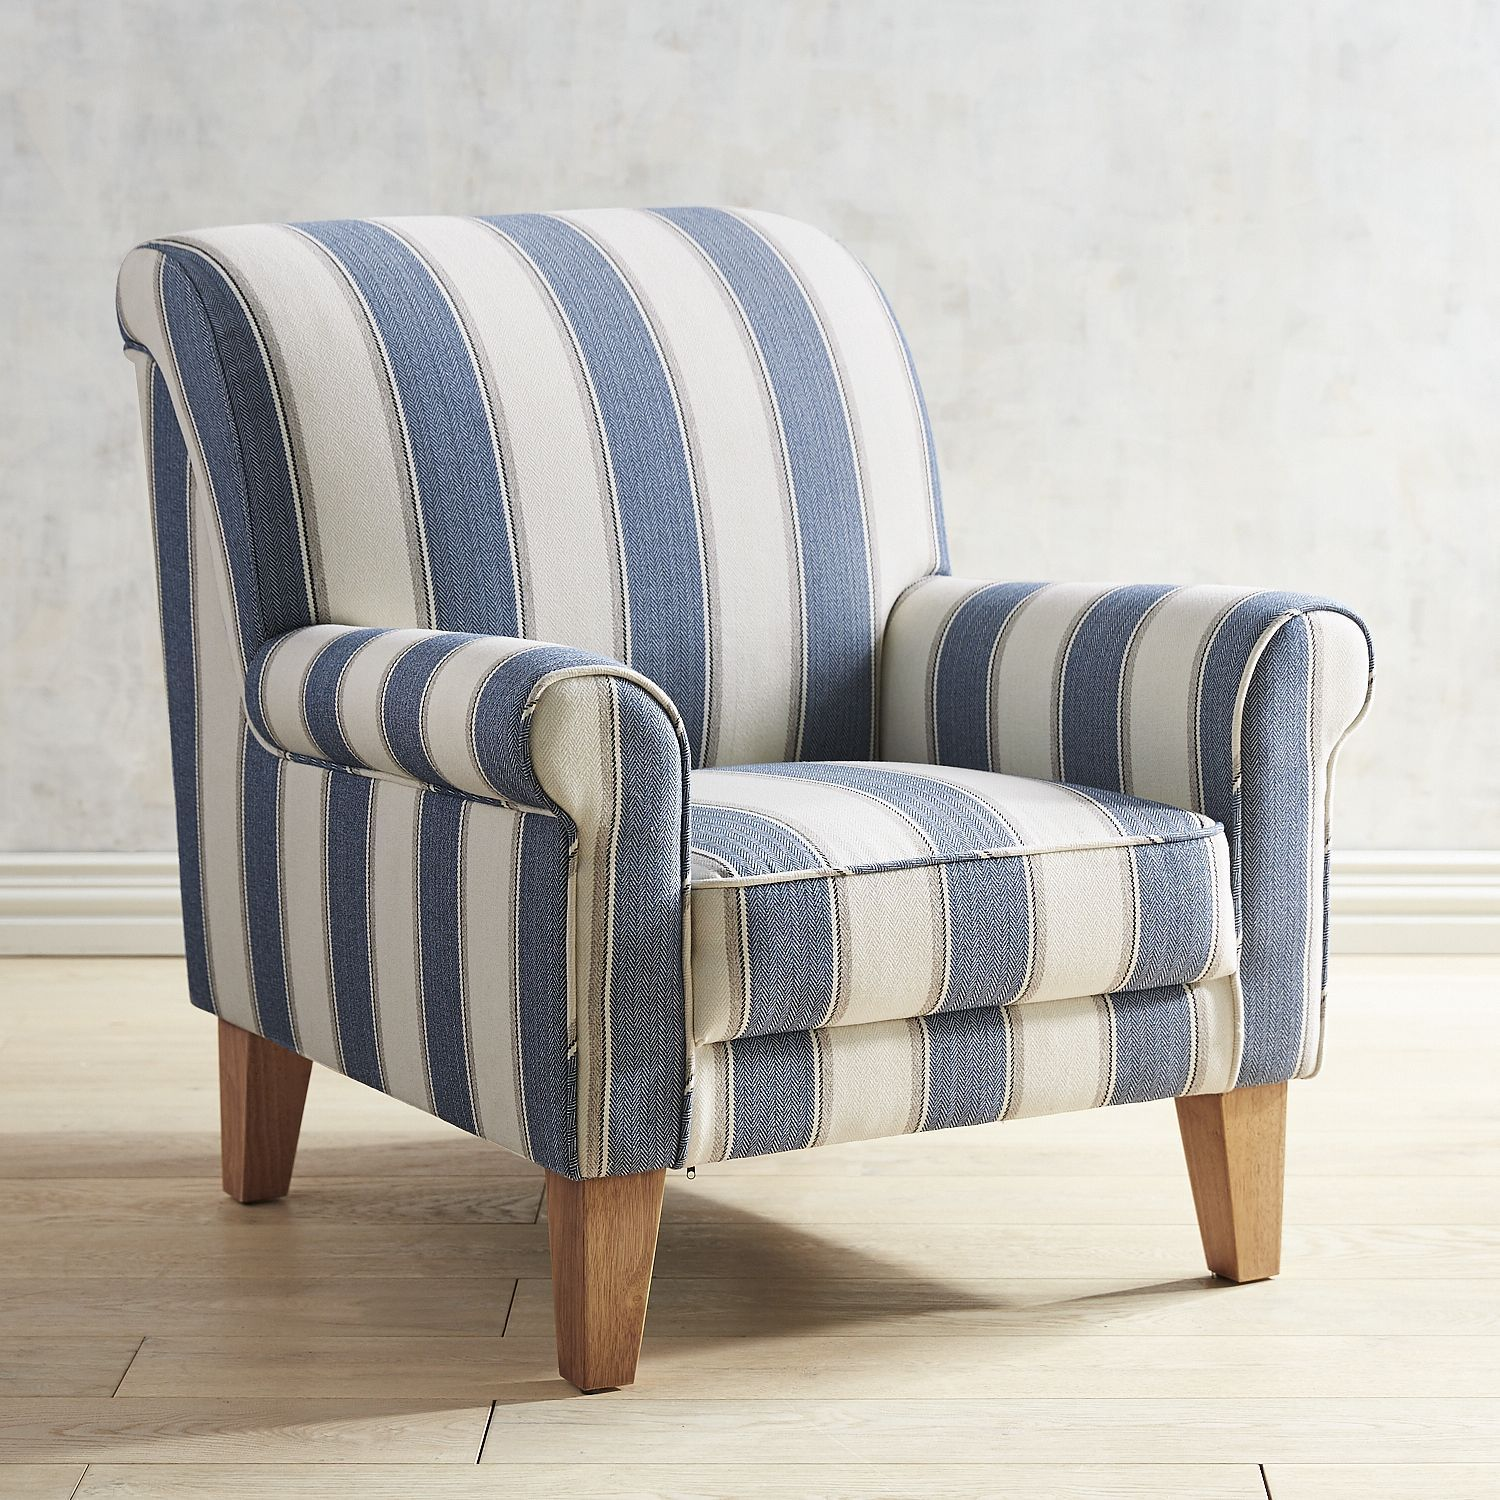 Blue And White Striped Chair Lyndee Blue White Striped Rolled Armchair Furniture Chairs